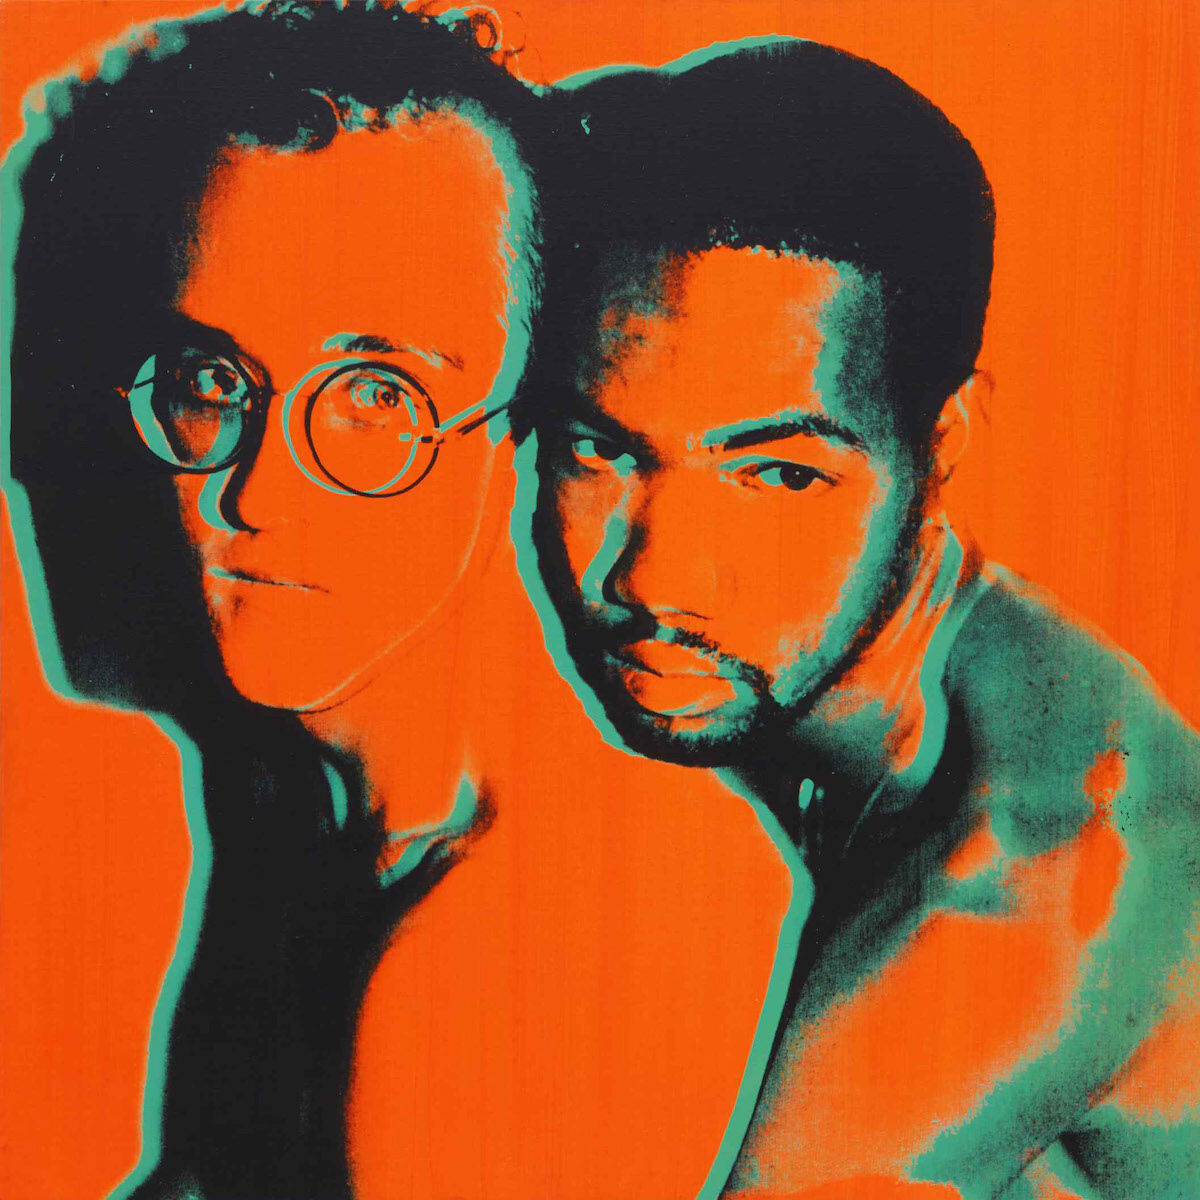 Andy Warhol, Portrait of Keith Haring and Juan DuBose, 1983. Est. $200,000–250,000. Courtesy Sotheby's.